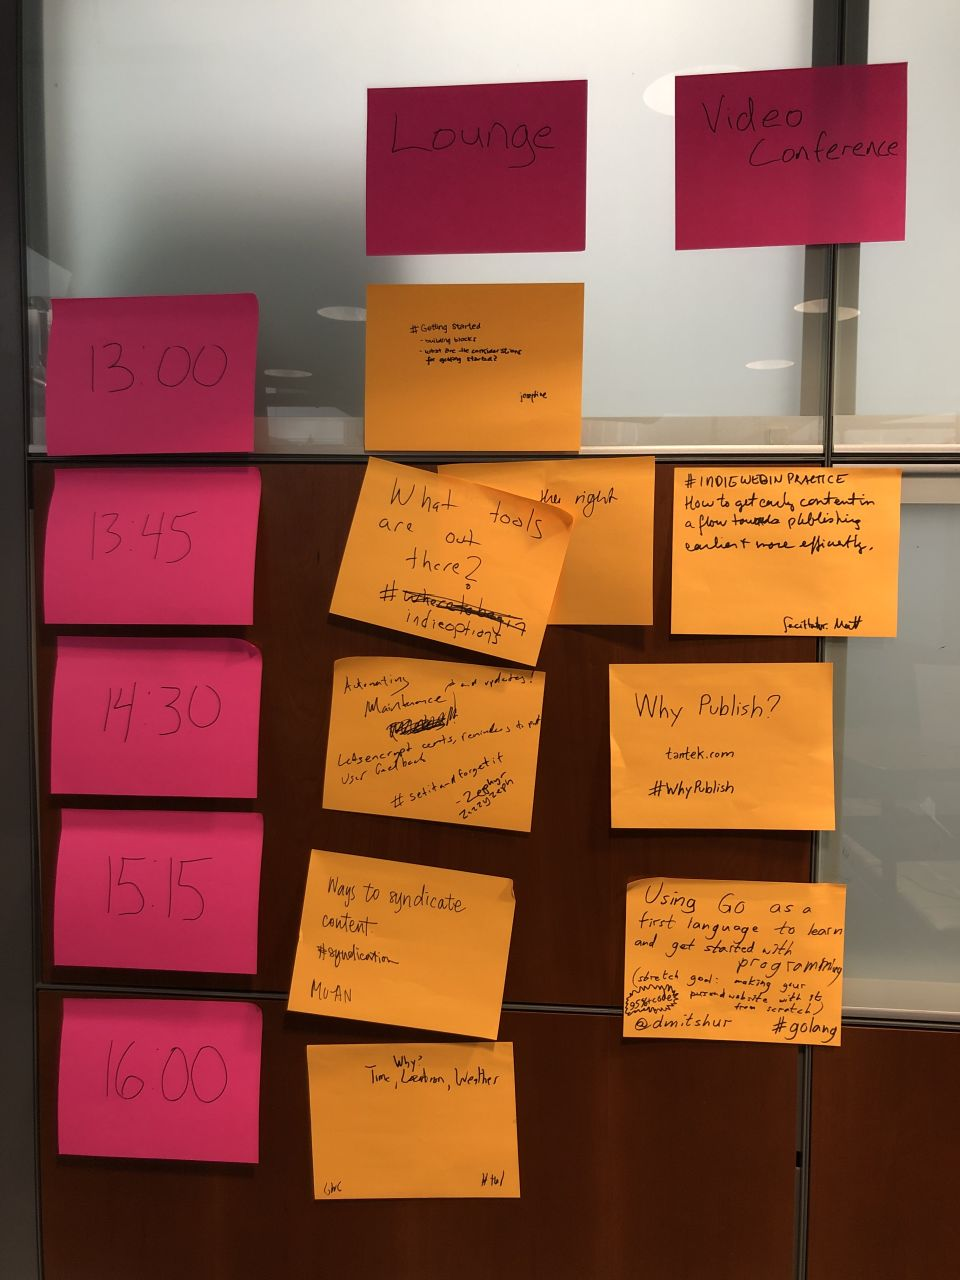 wood and glass cubicle wall covered in pink and orange sticky notes indicating times, rooms, and topics to discuss